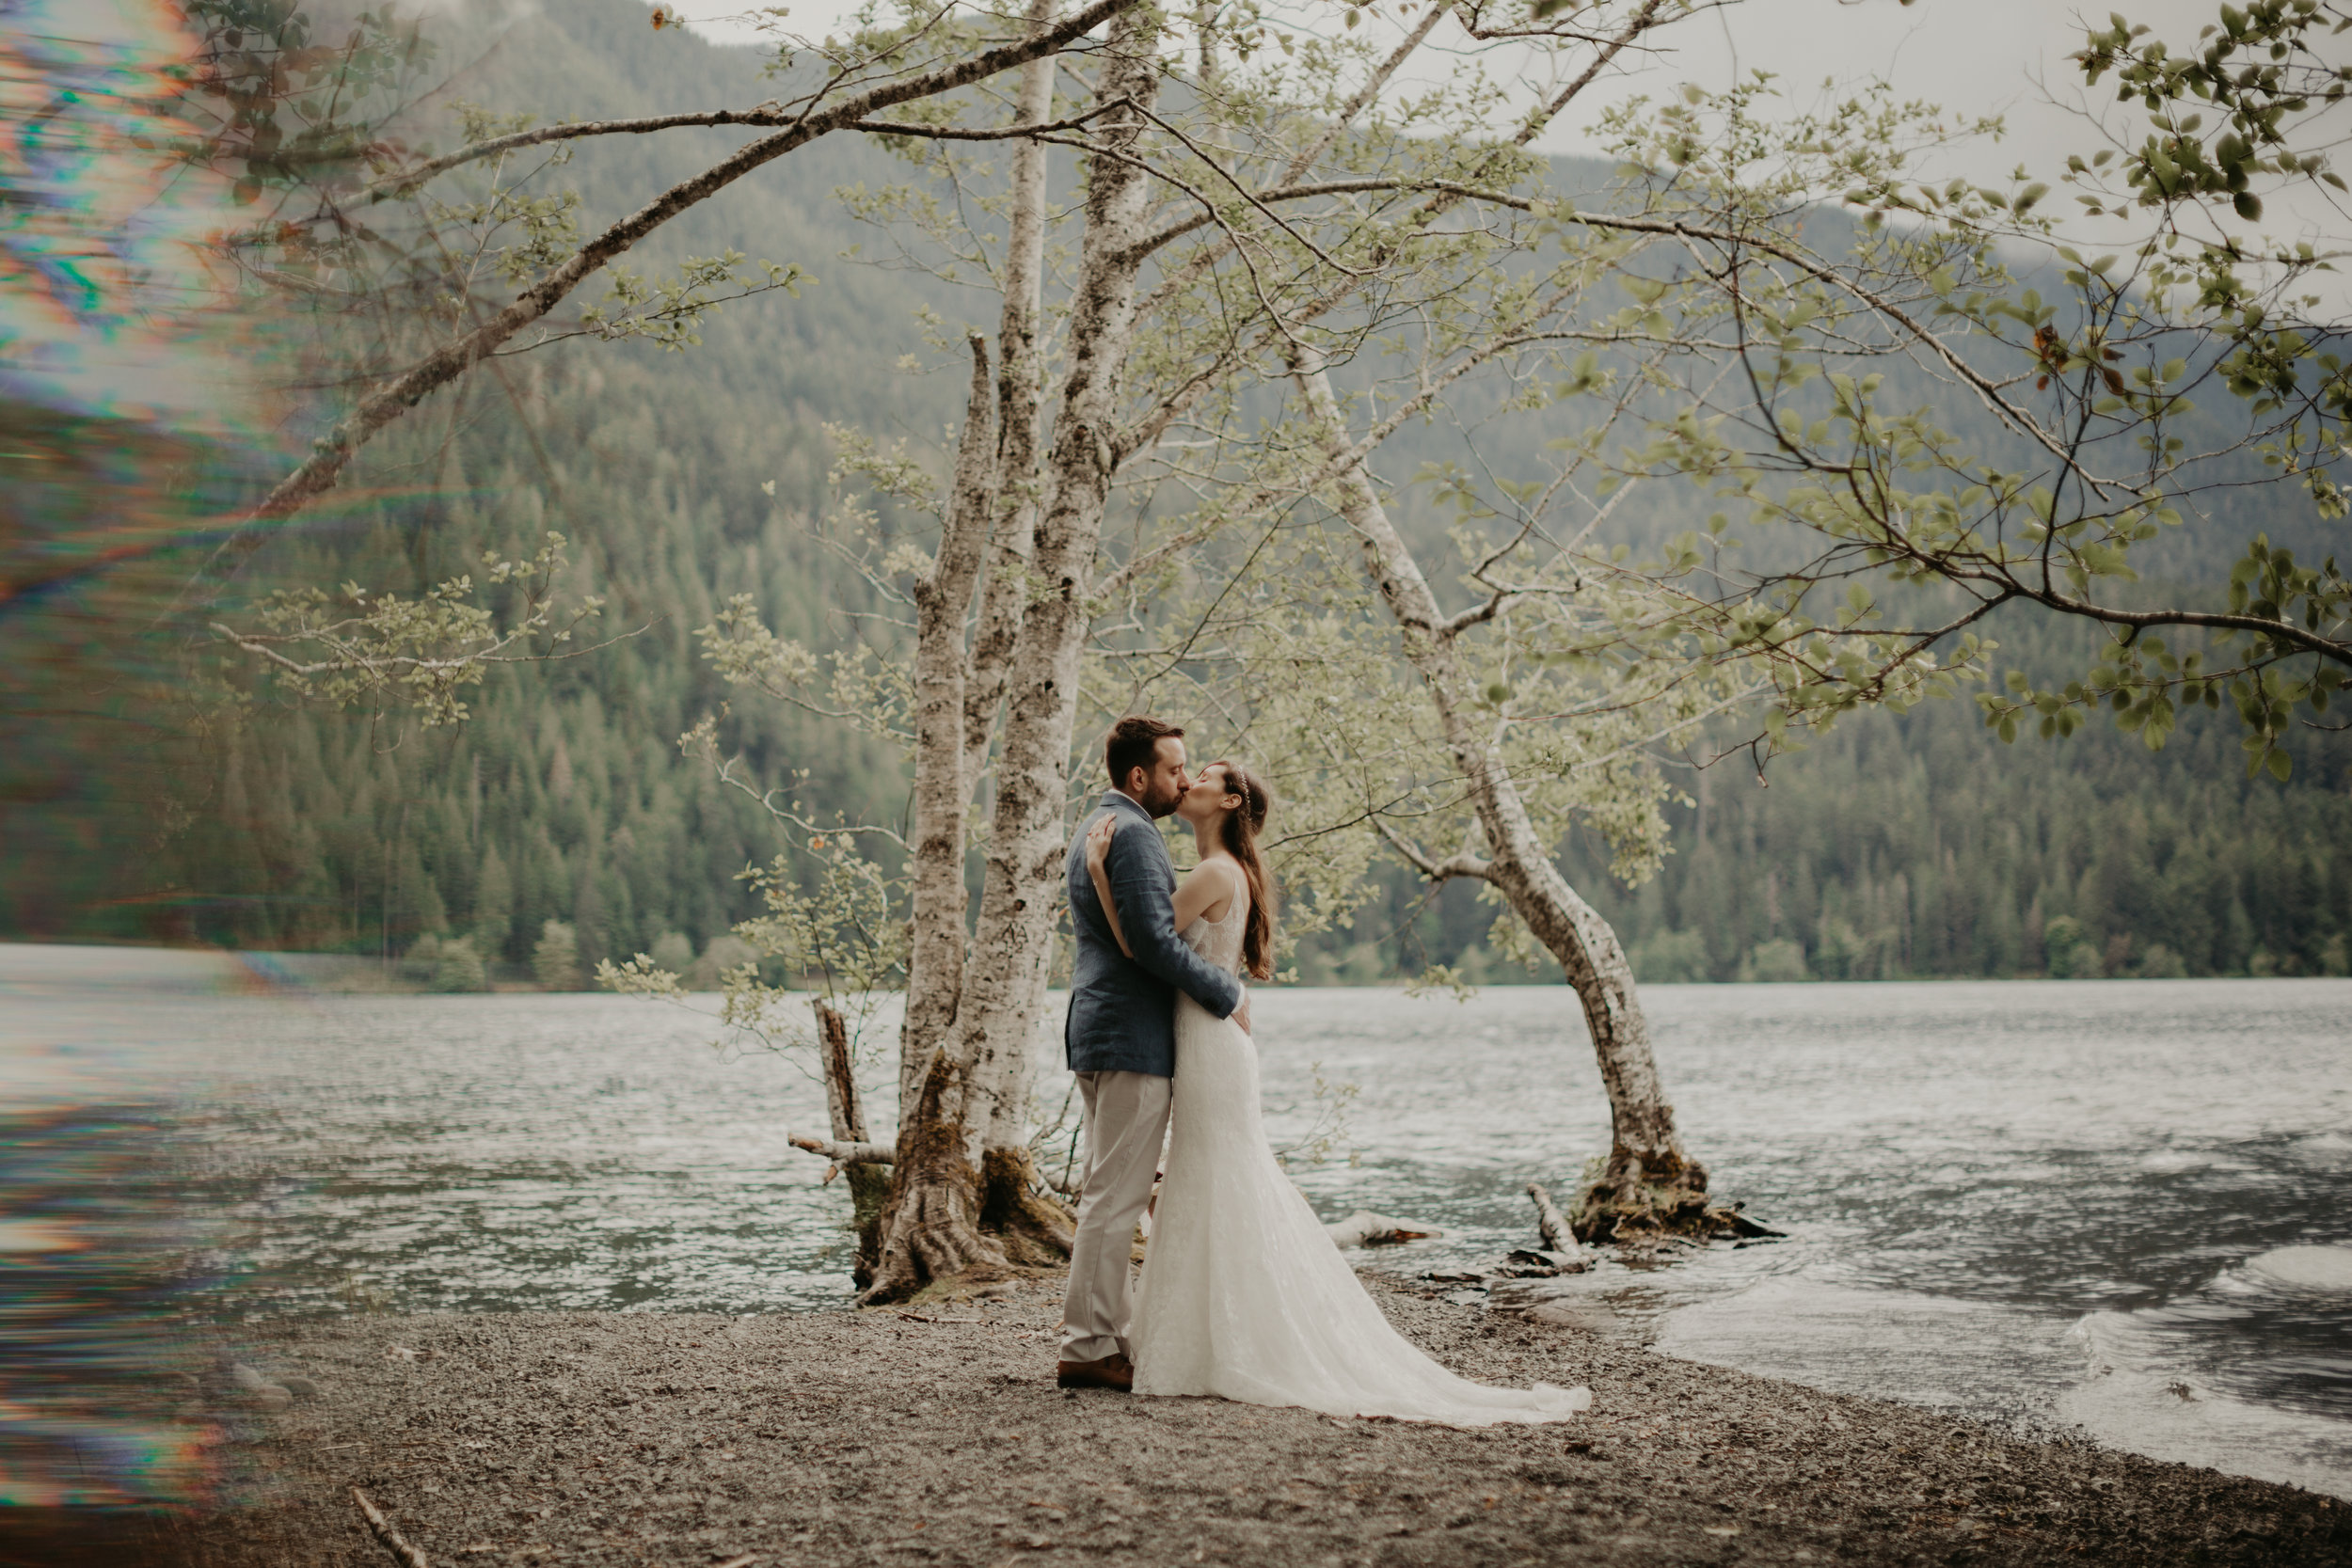 PNW-elopement-wedding-engagement-olympic national park-port angeles-hurricane ridge-lake crescent-kayla dawn photography- photographer-photography-kayladawnphoto-247.jpg